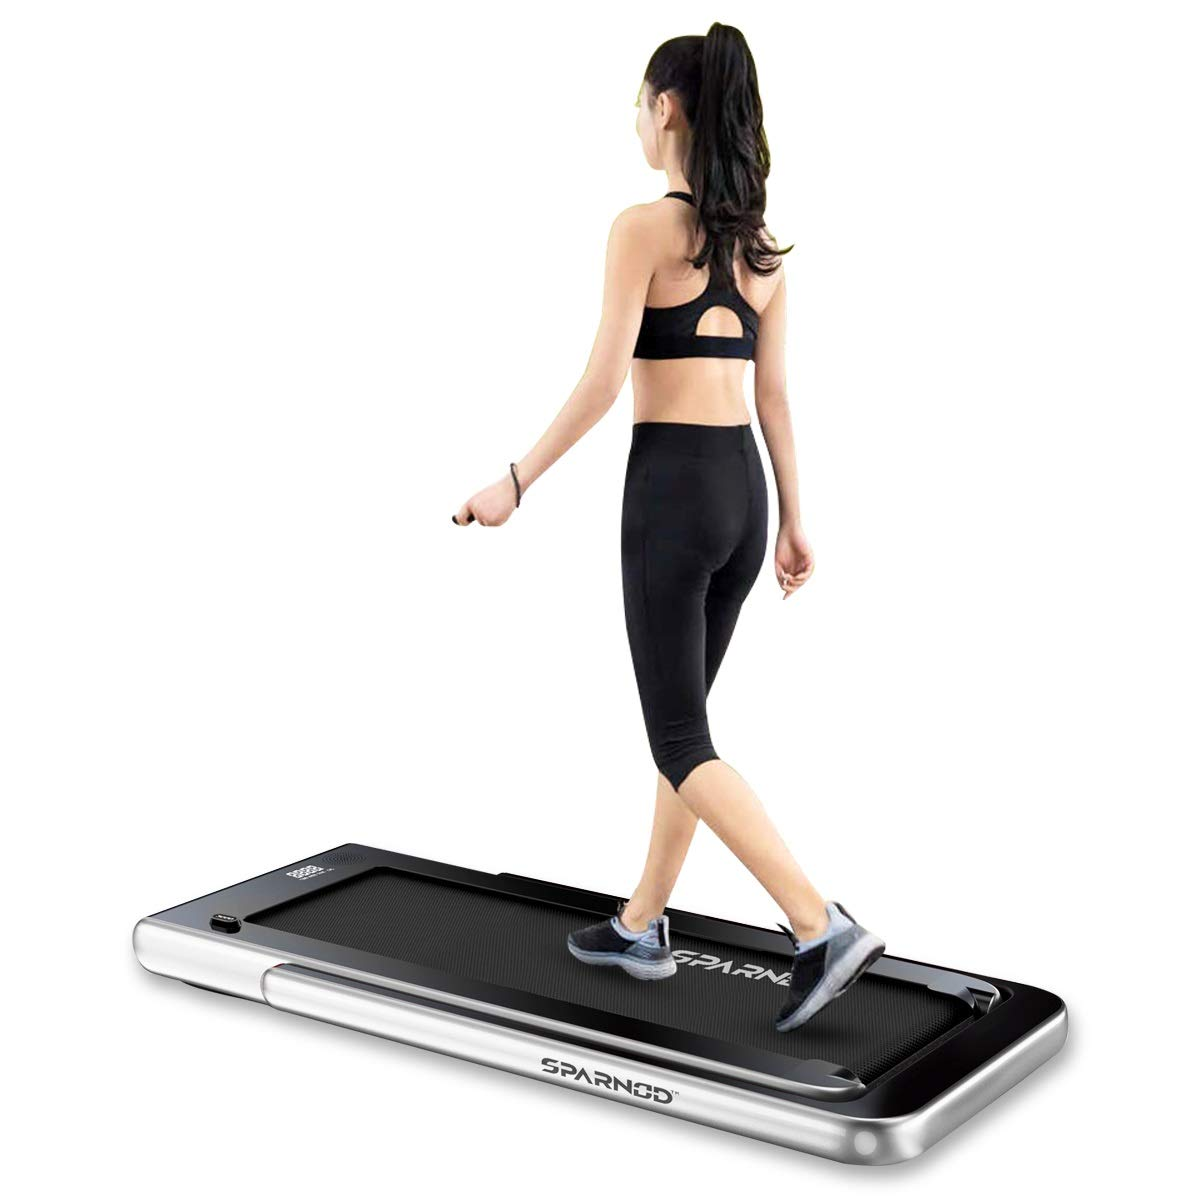 Buy Sparnod Fitness STH-3000 (4 HP Peak) 2 in 1 Foldable Treadmill for Home  Cum Under Desk Walking Pad- Slim Enough to be stored Under Bed (Grey)  Online at Low Prices in